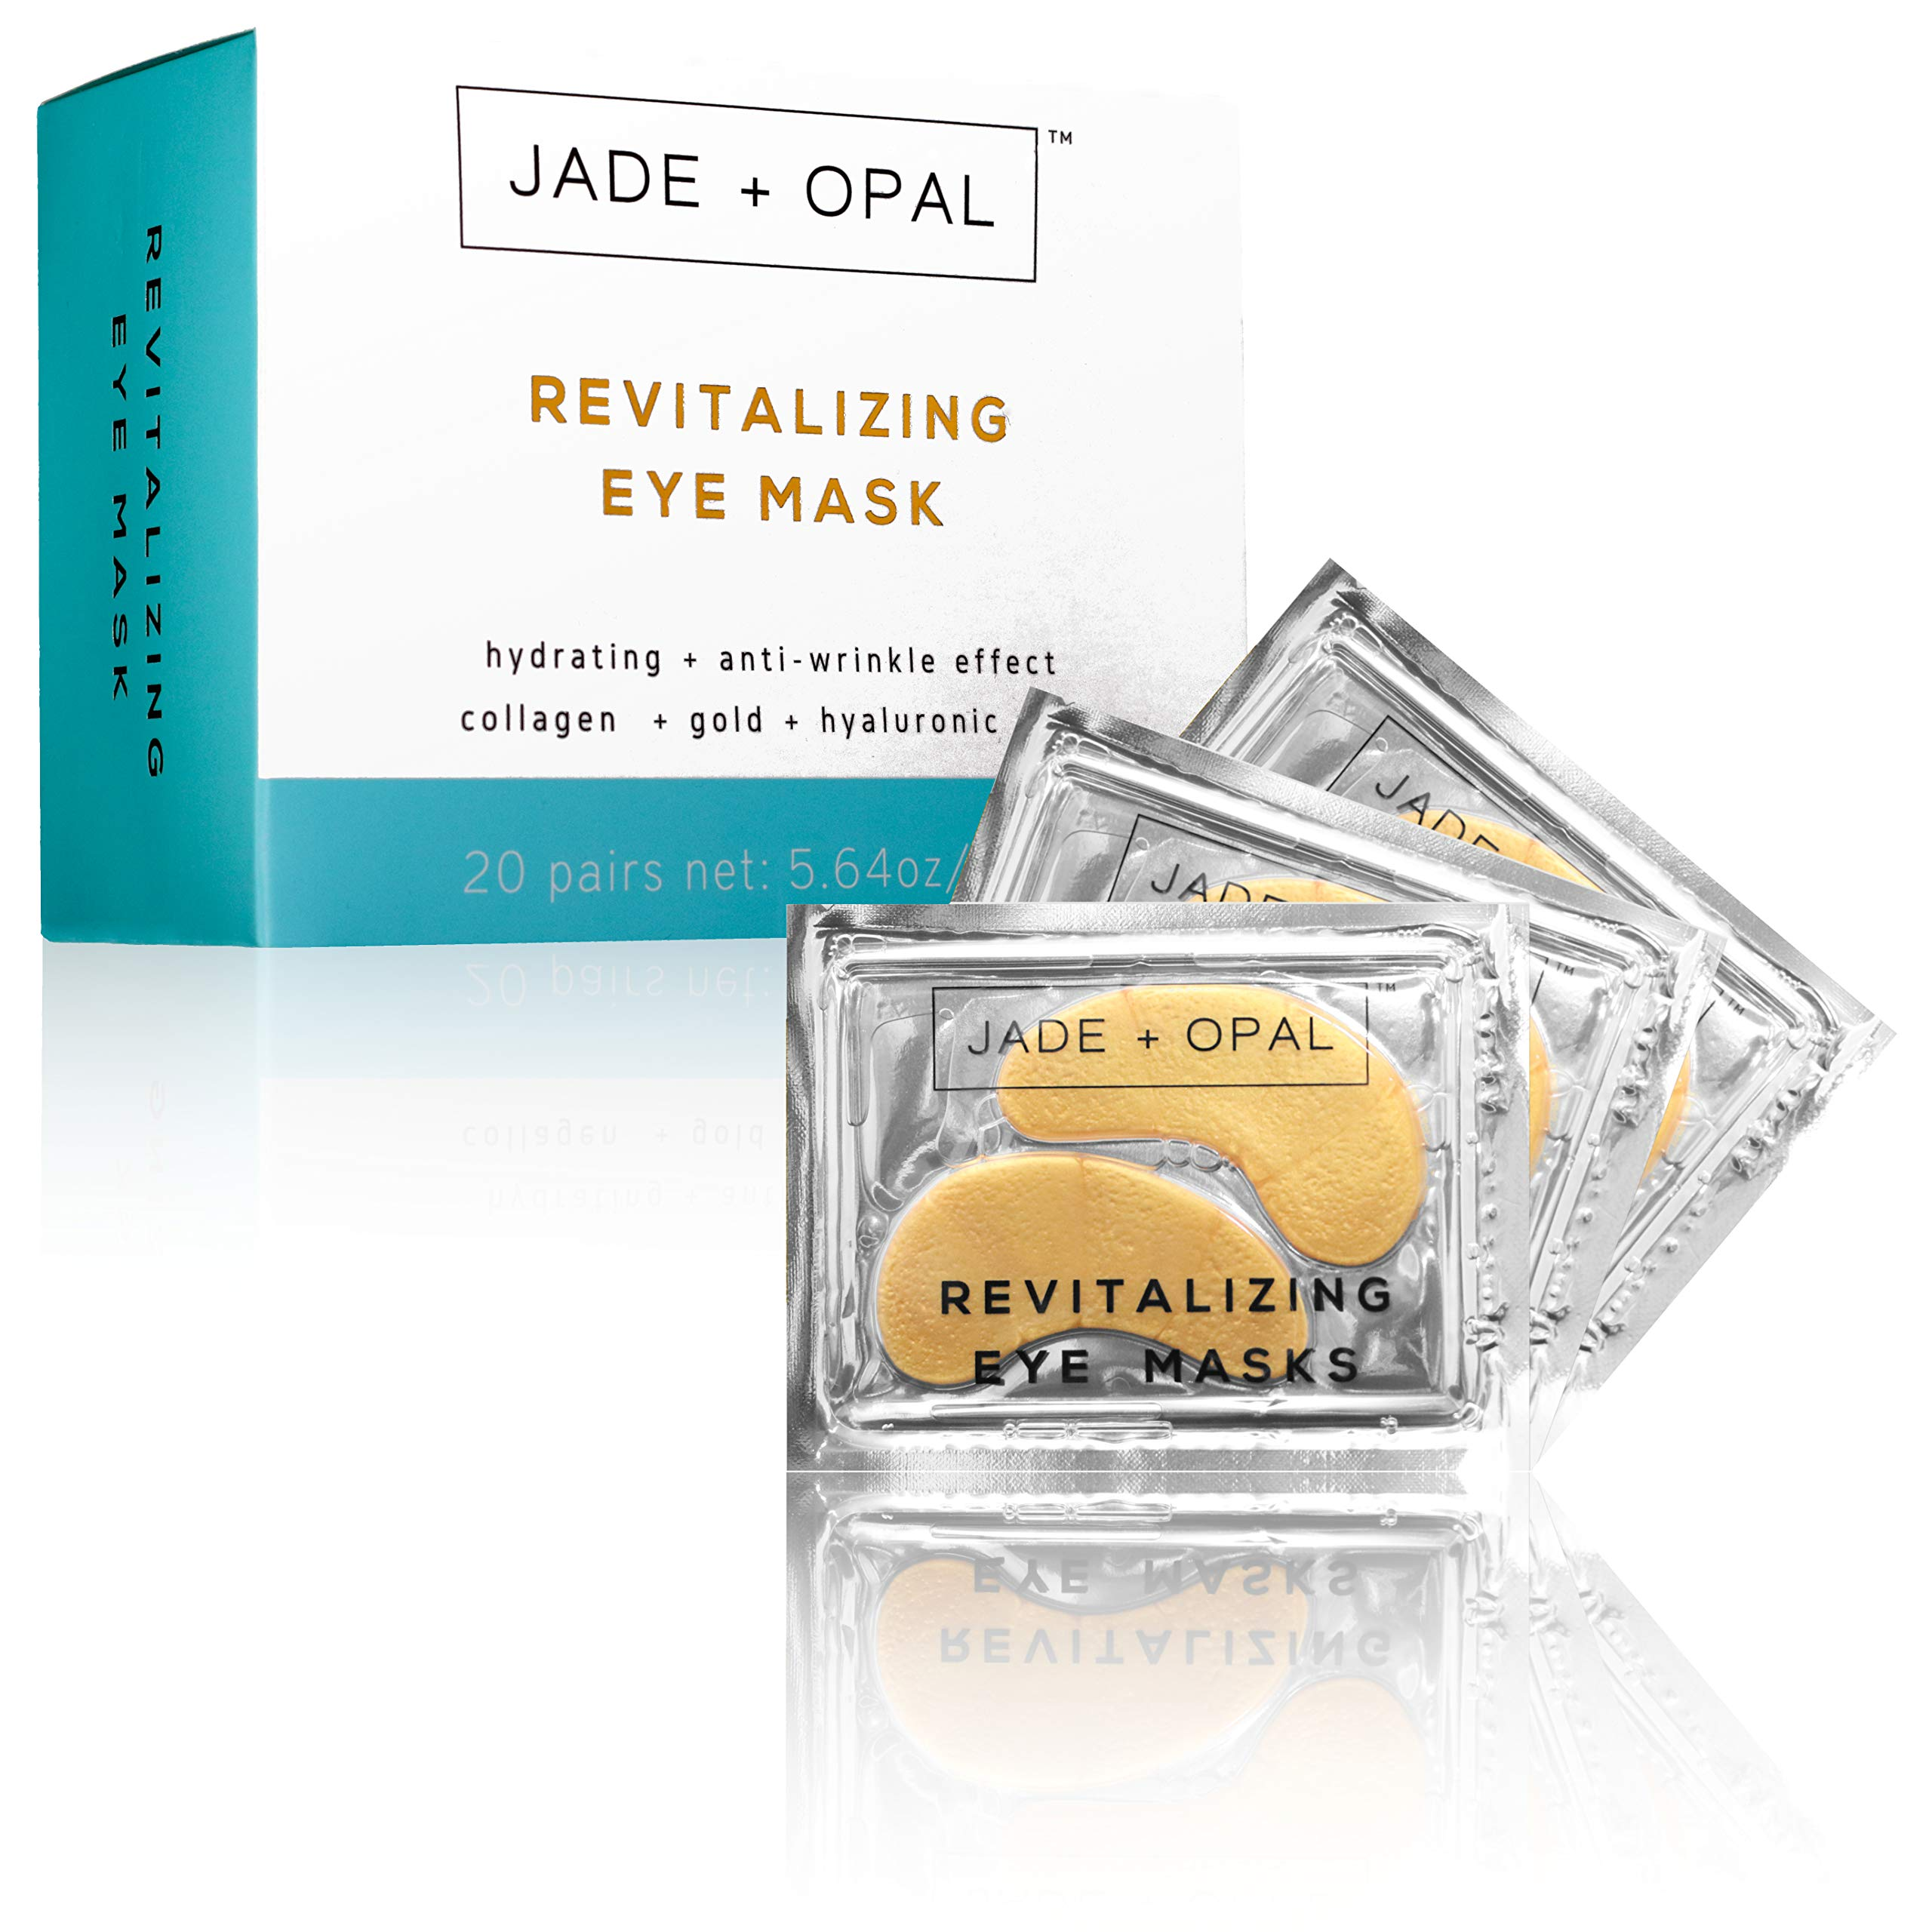 Jade and Opal Gold Collagen Revitalizing Eye Mask, 20 Pairs (Pack of 1) by Jade and Opal (Image #1)